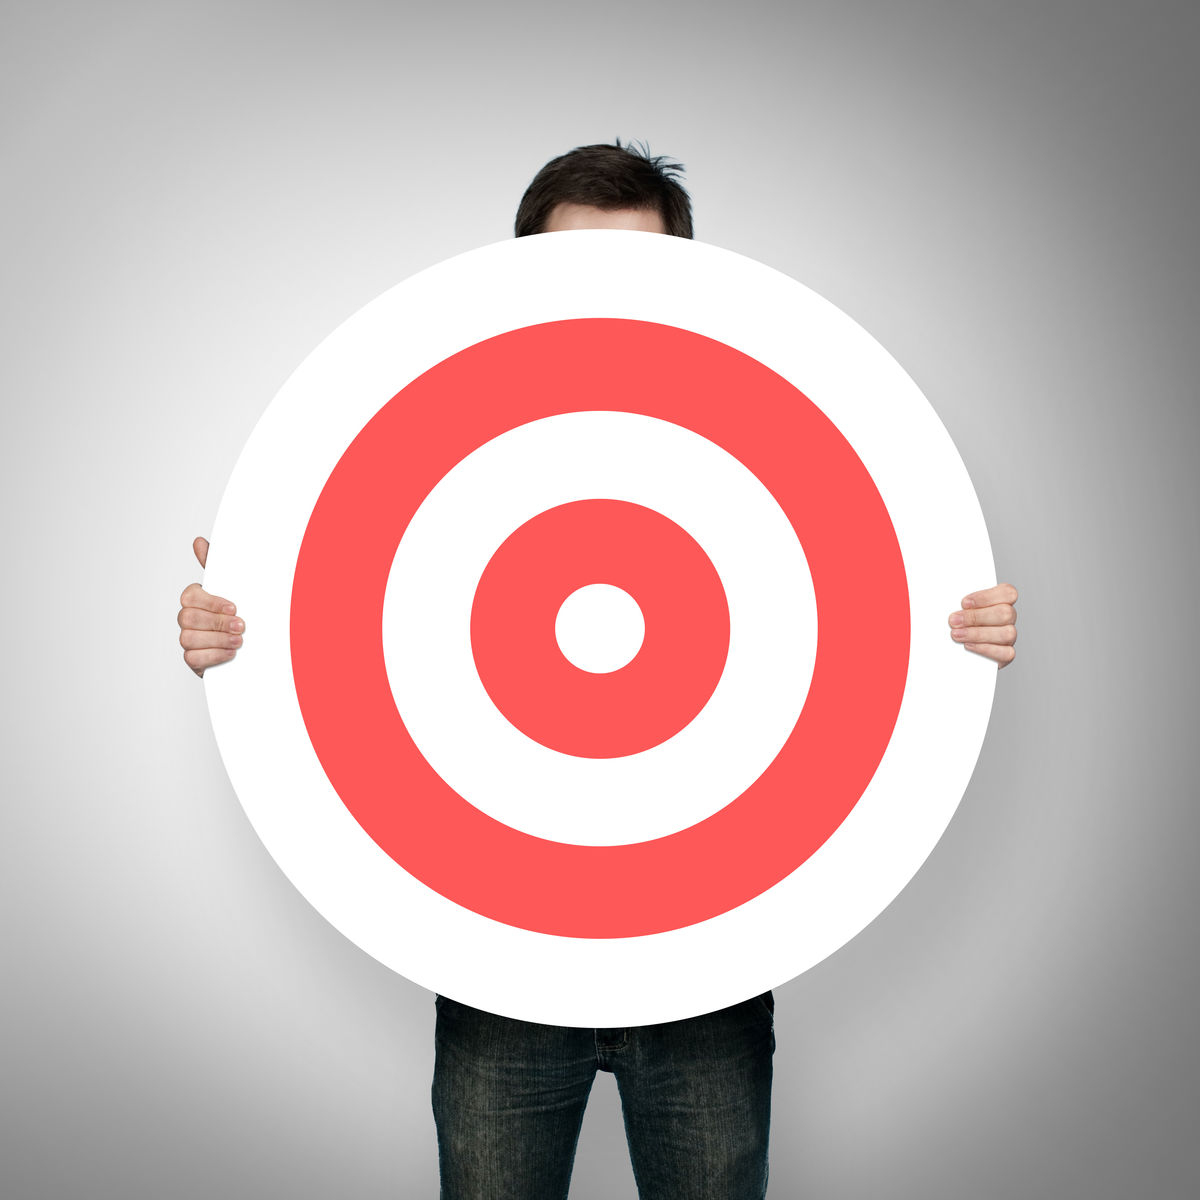 Are You the Target of a Sociopath? Part I of 2 | Psychology Today